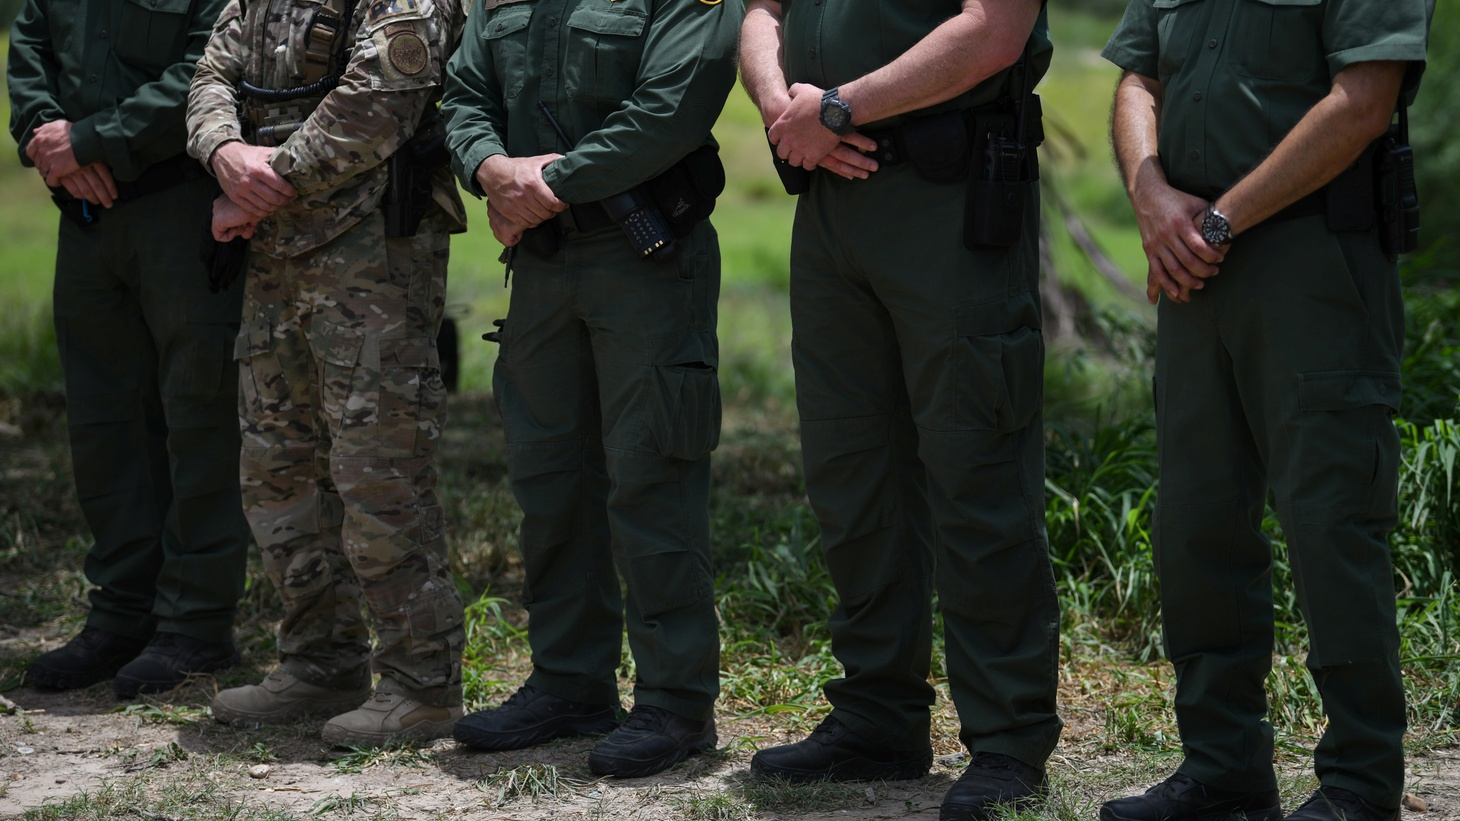 U.S. Border Patrol agents stand at attention during a 'Border Safety Initiative' media event at the U.S.-Mexico border in Mission, Texas, U.S., July 1, 2019.